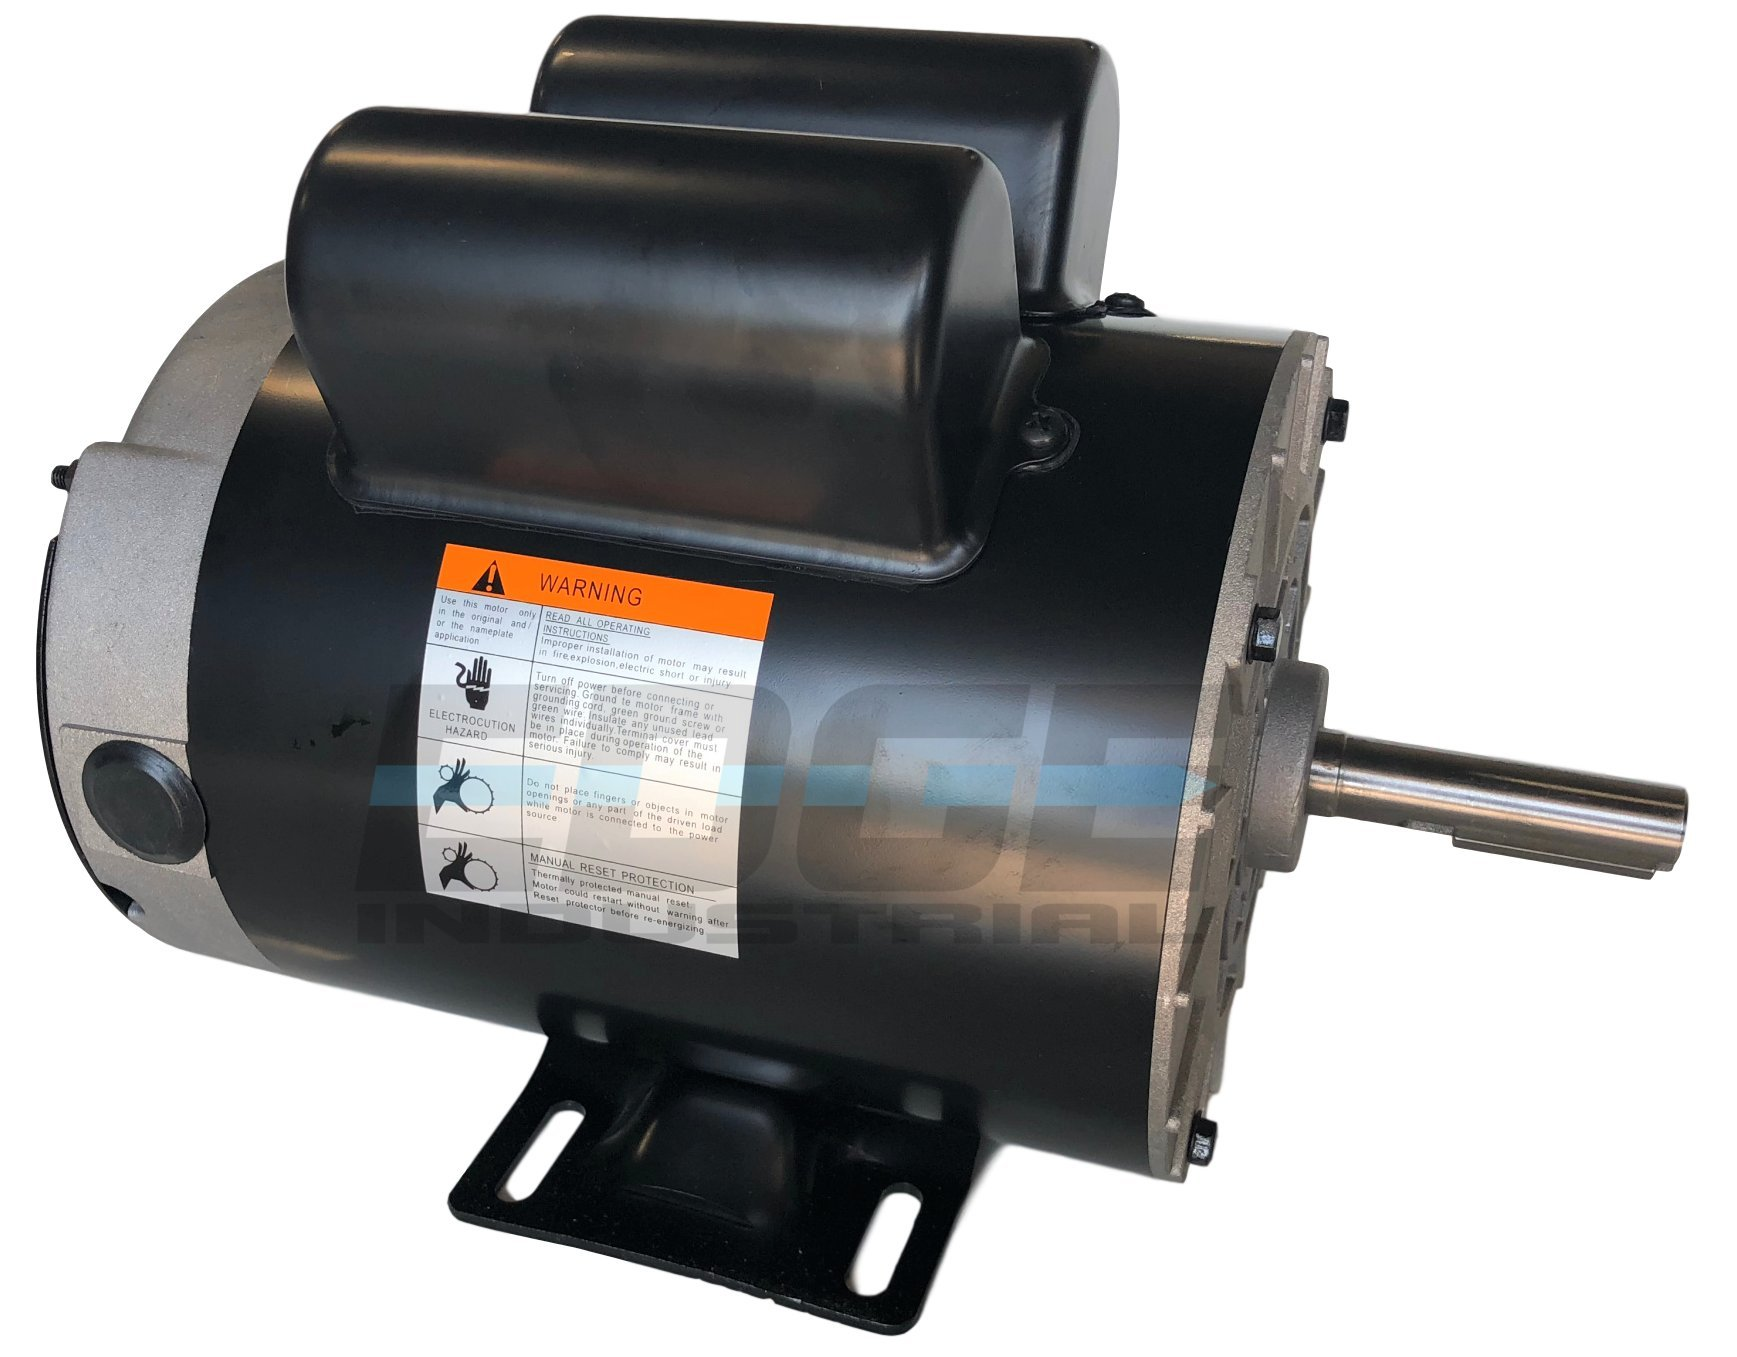 NEW 2 HP SPL Compressor Duty Electric Motor, 3450 RPM, 56 Frame, 5/8'' Shaft Diameter,120/240 VOLT by EDGE INDUSTRIAL EMZ (Image #3)